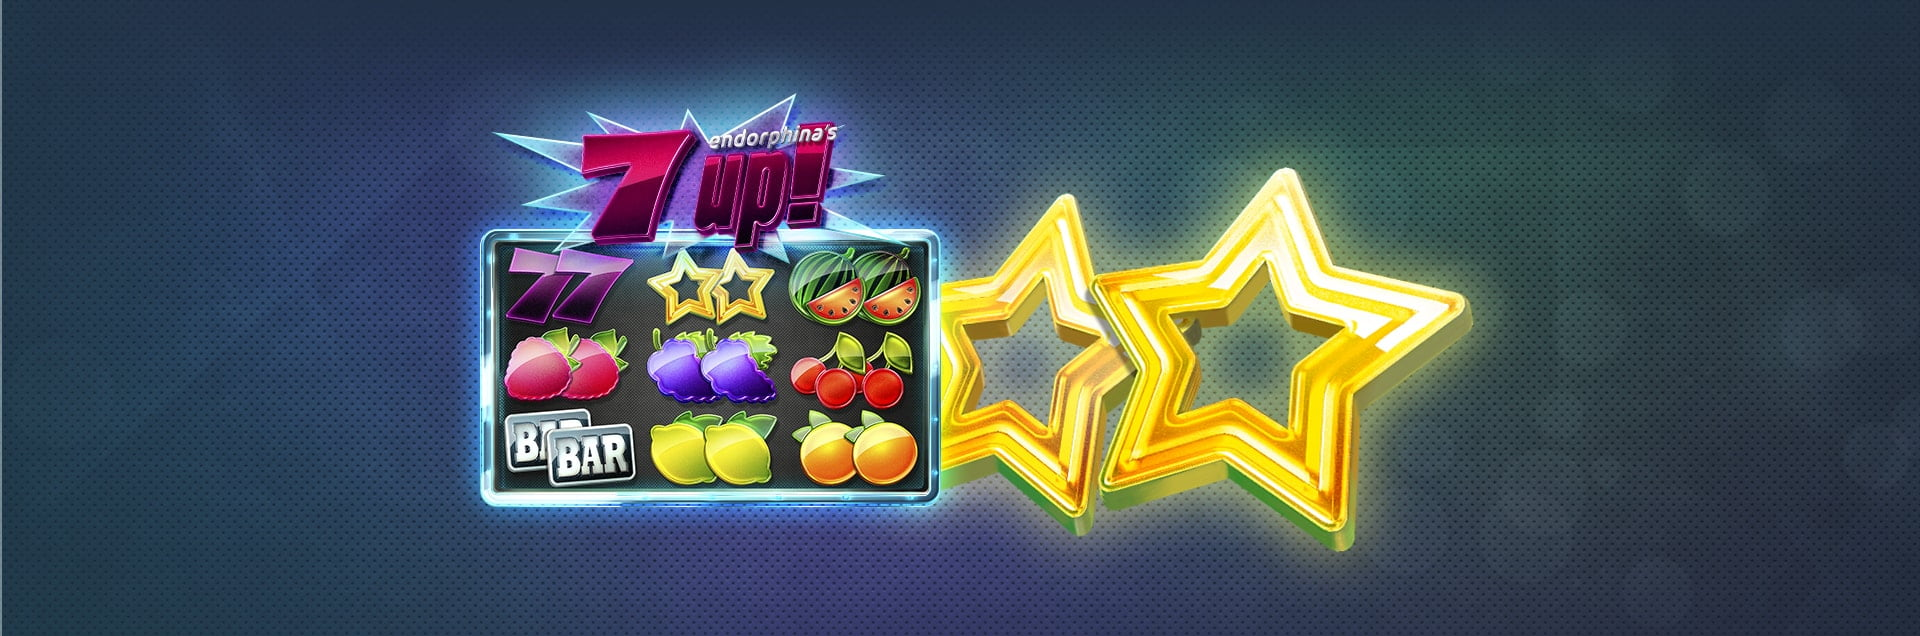 7 UP slot review